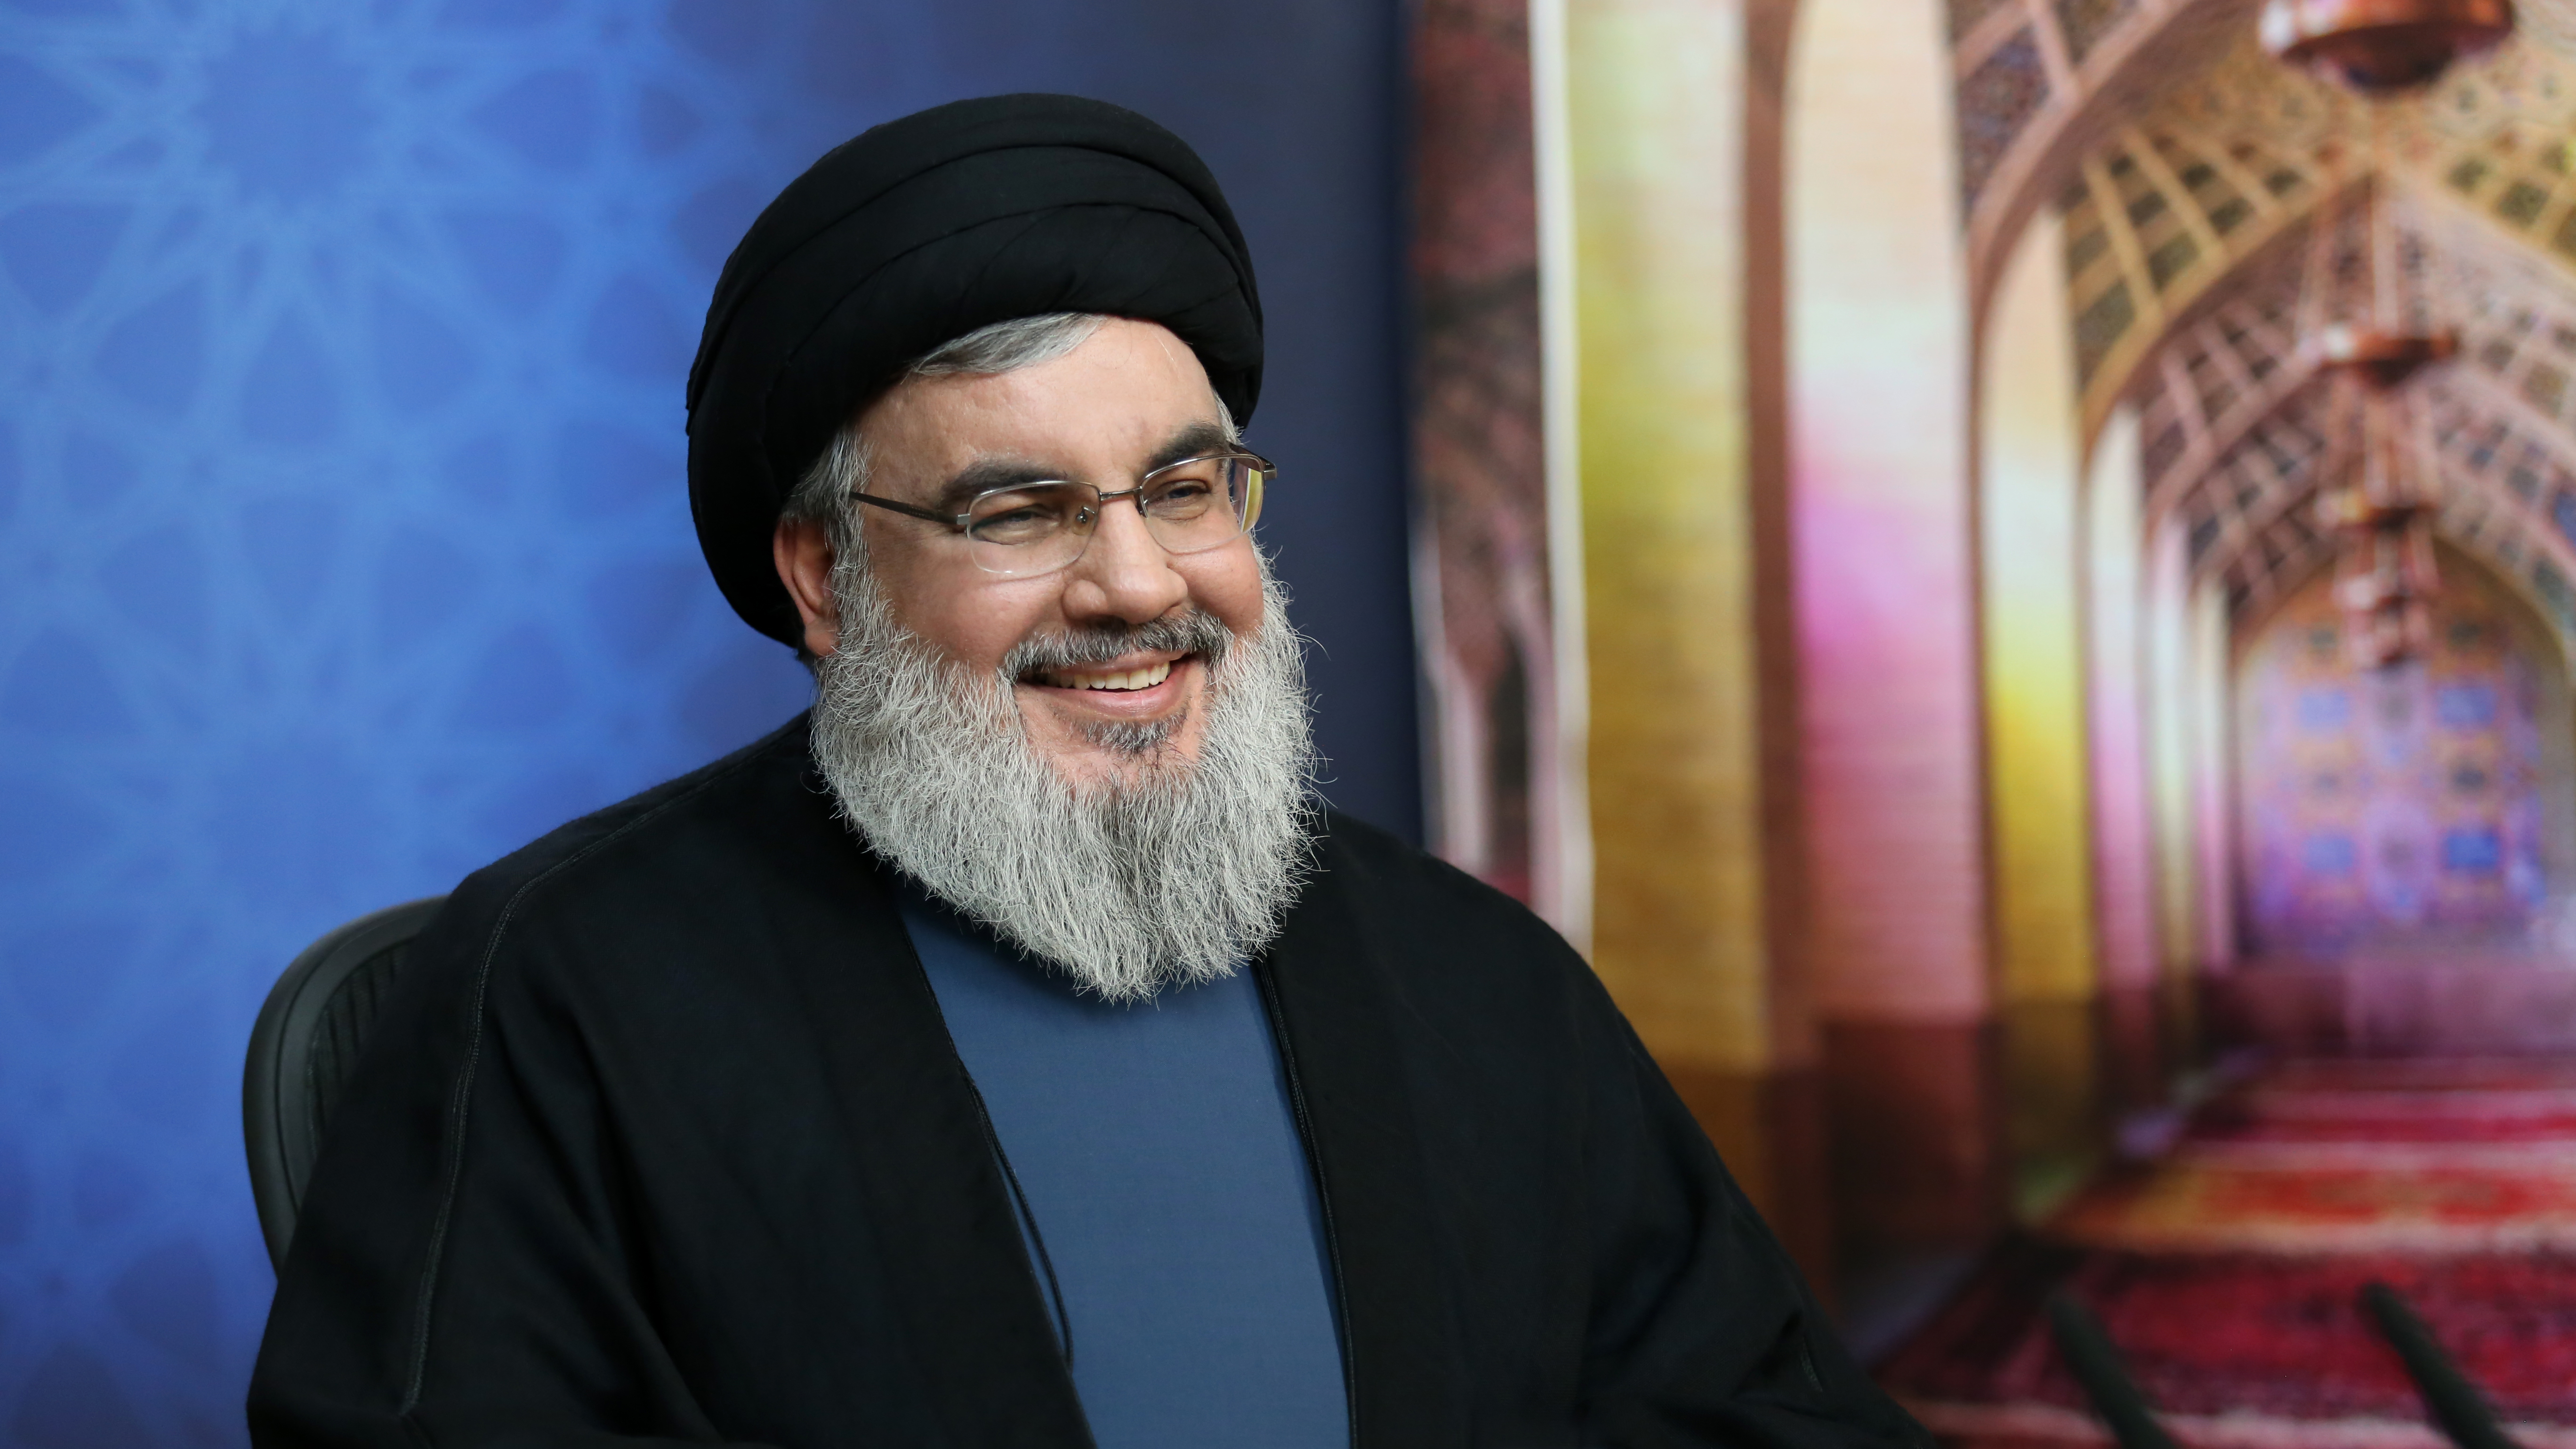 Sayyed Nasrallah said he has received many letters from Muslim Doctors and other medical staff who said what the resistance fighters have said [during the July 2006 war], and he responds to them by saying